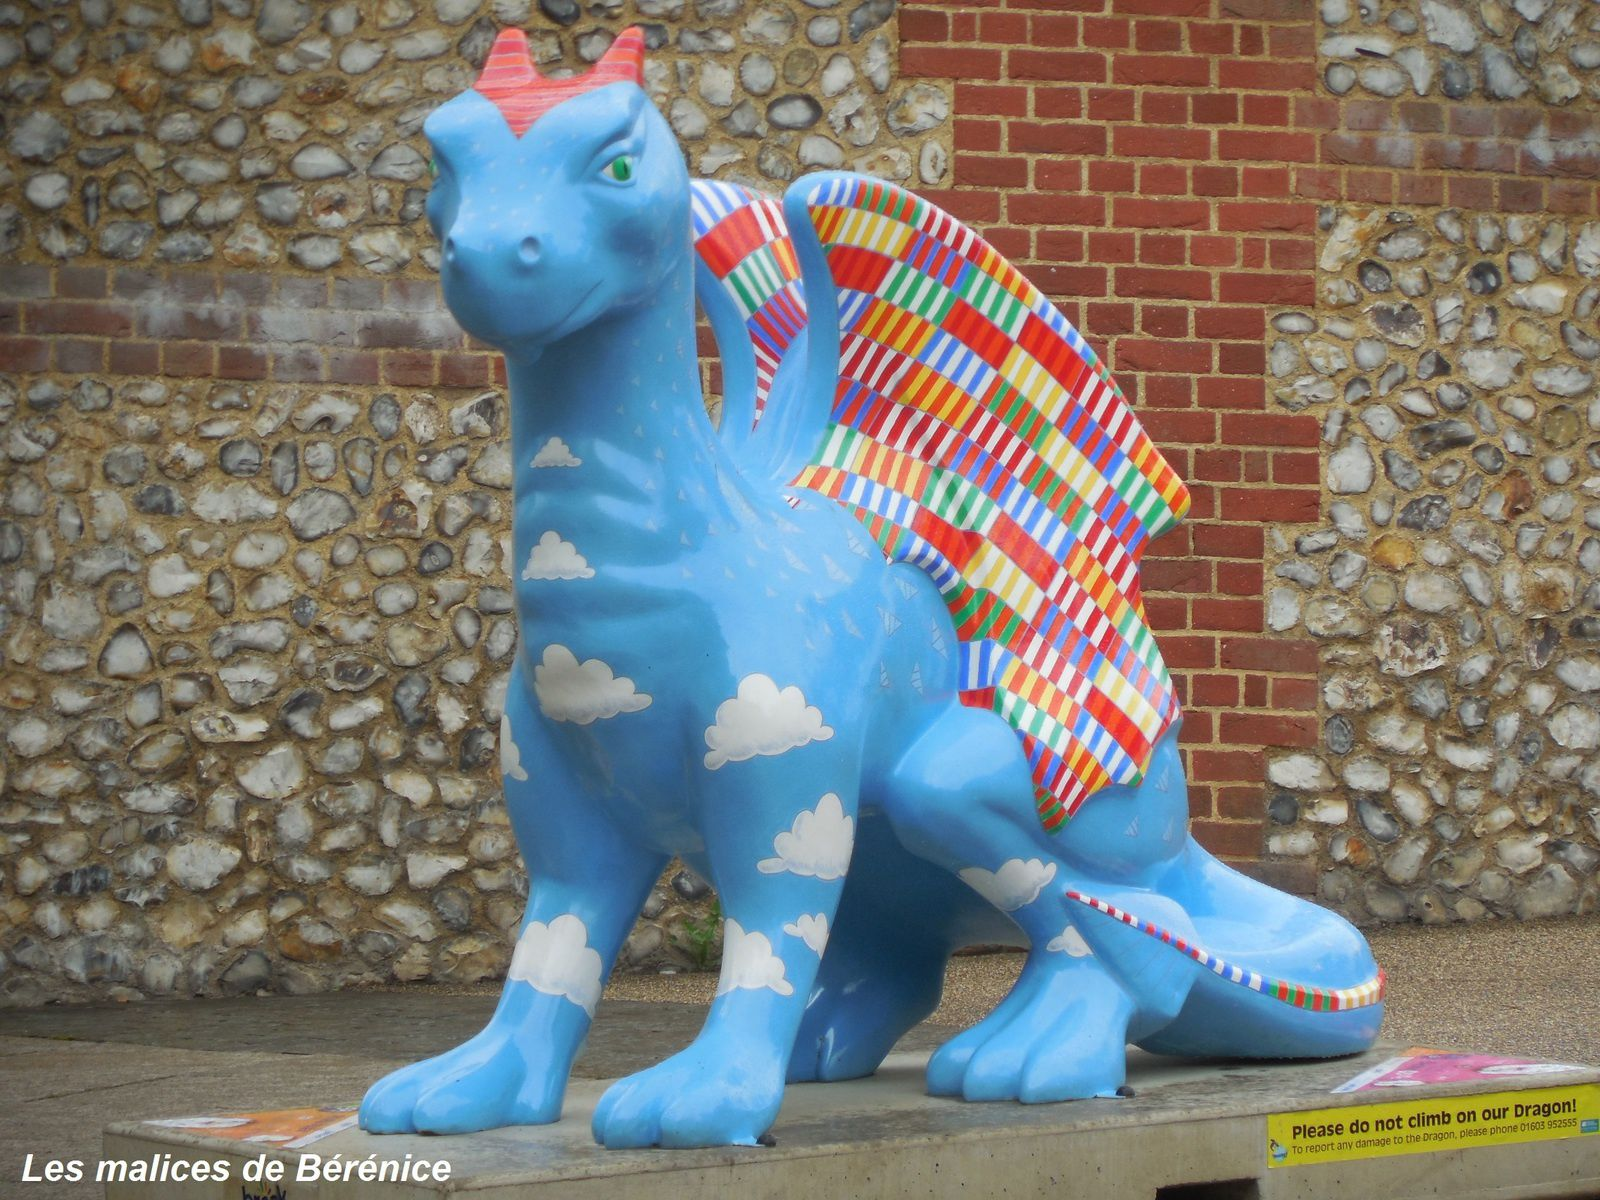 Norwich's colorful dragons, lieu de prise : Norwich, England